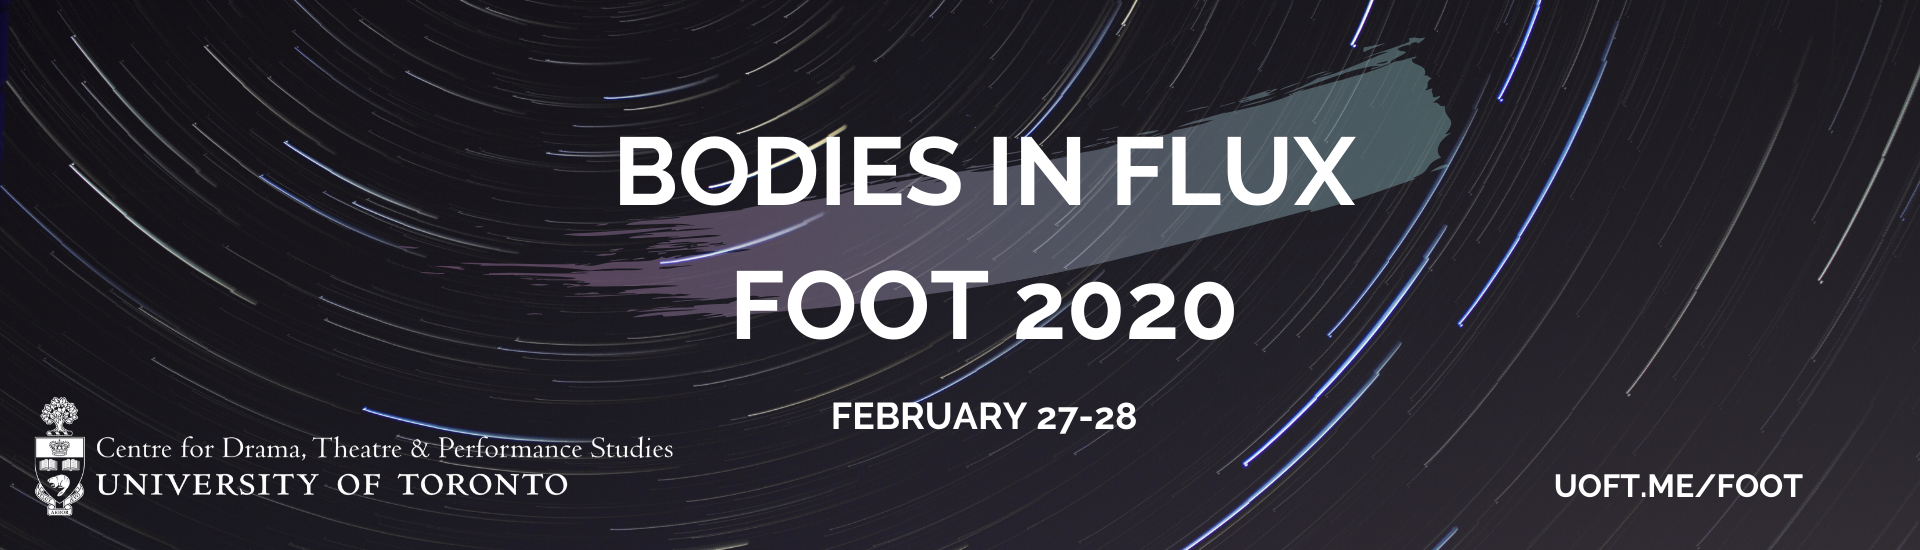 Bodies in Flux FOOT 2020 conference banner